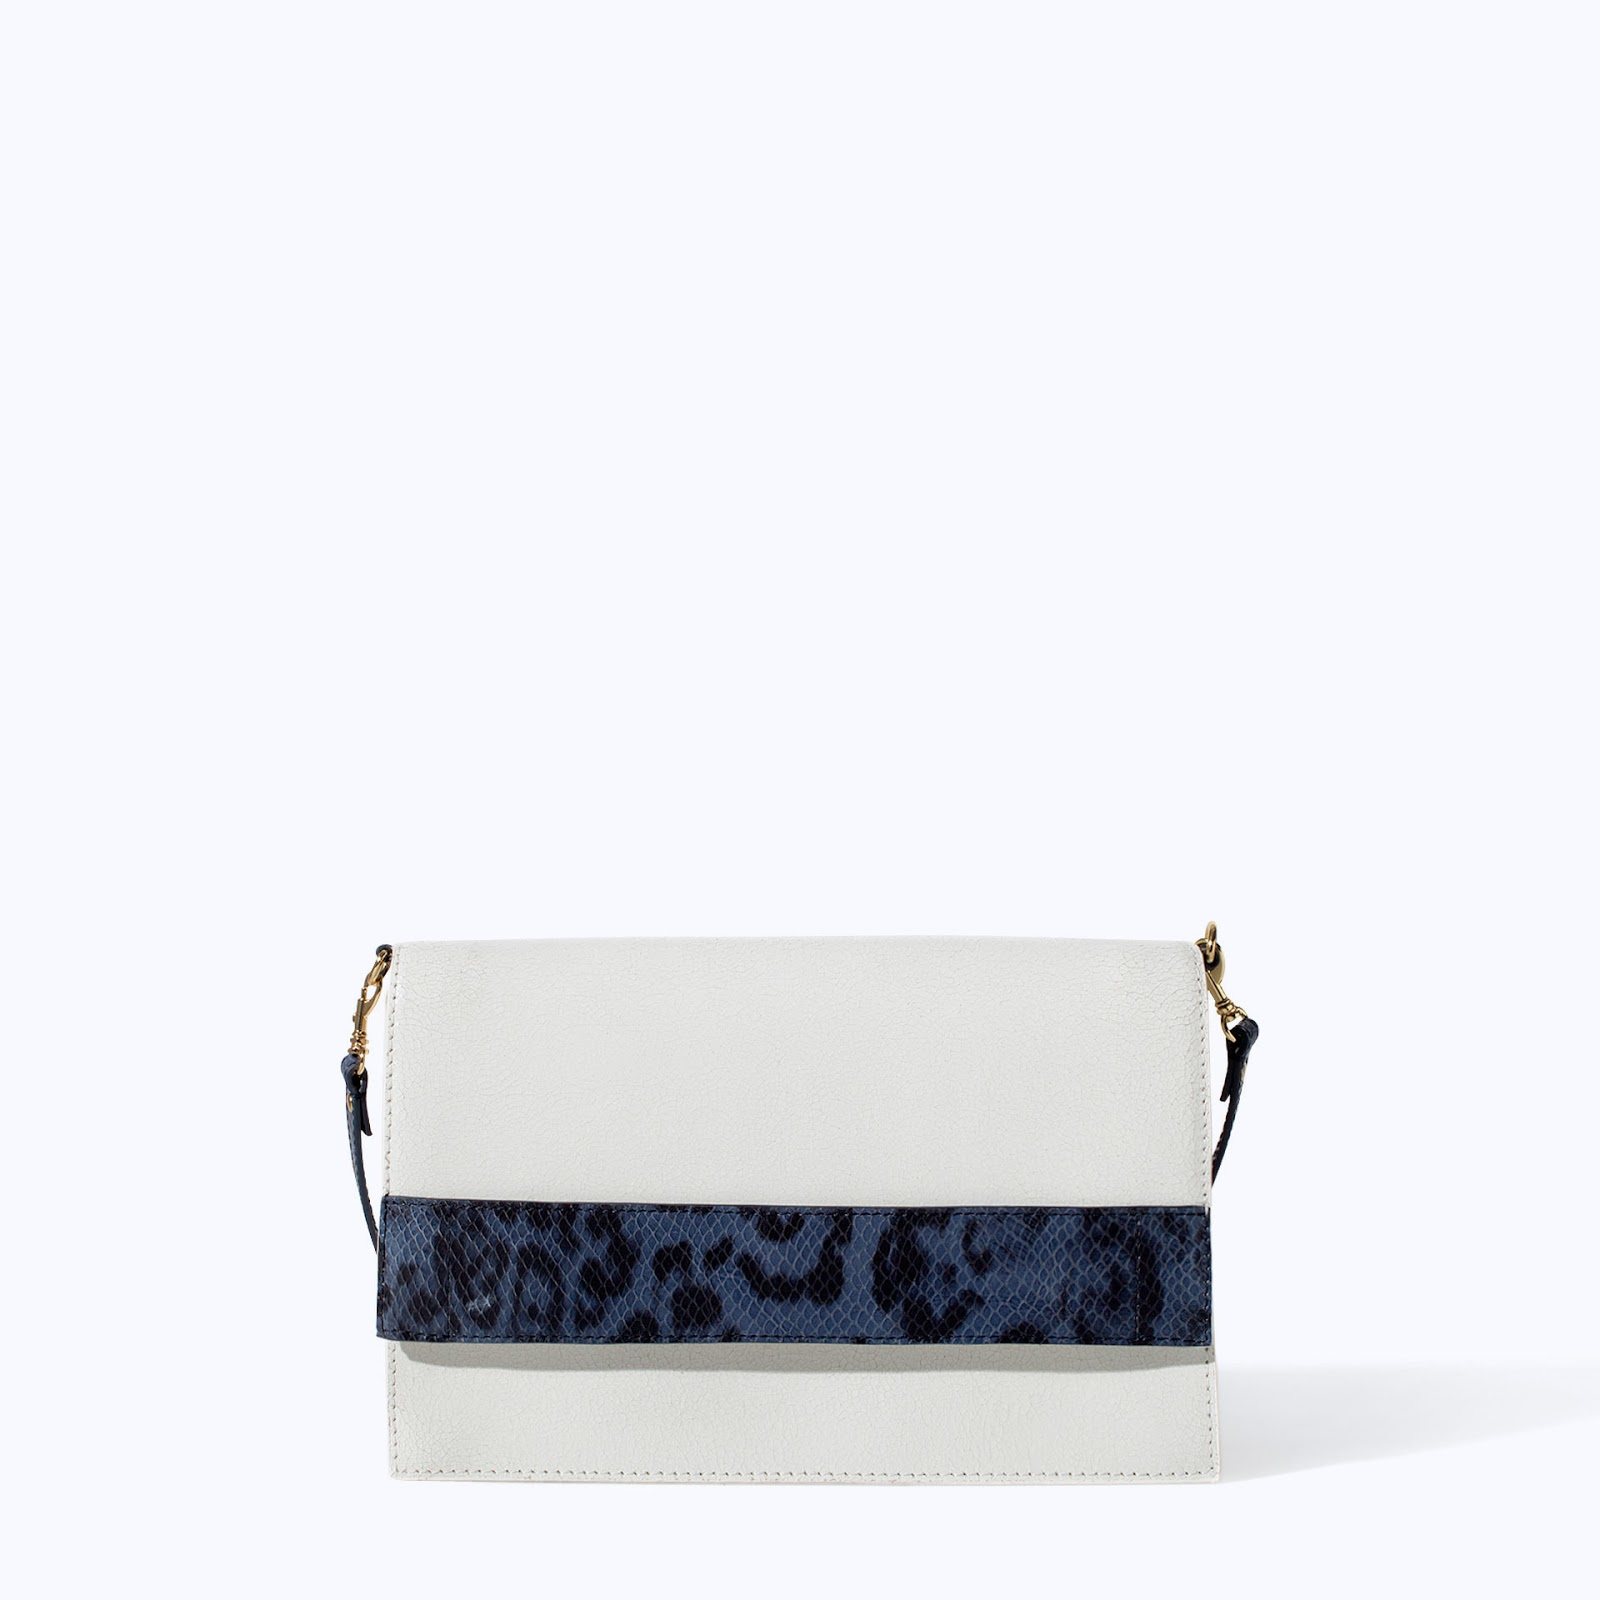 zara white clutch bag